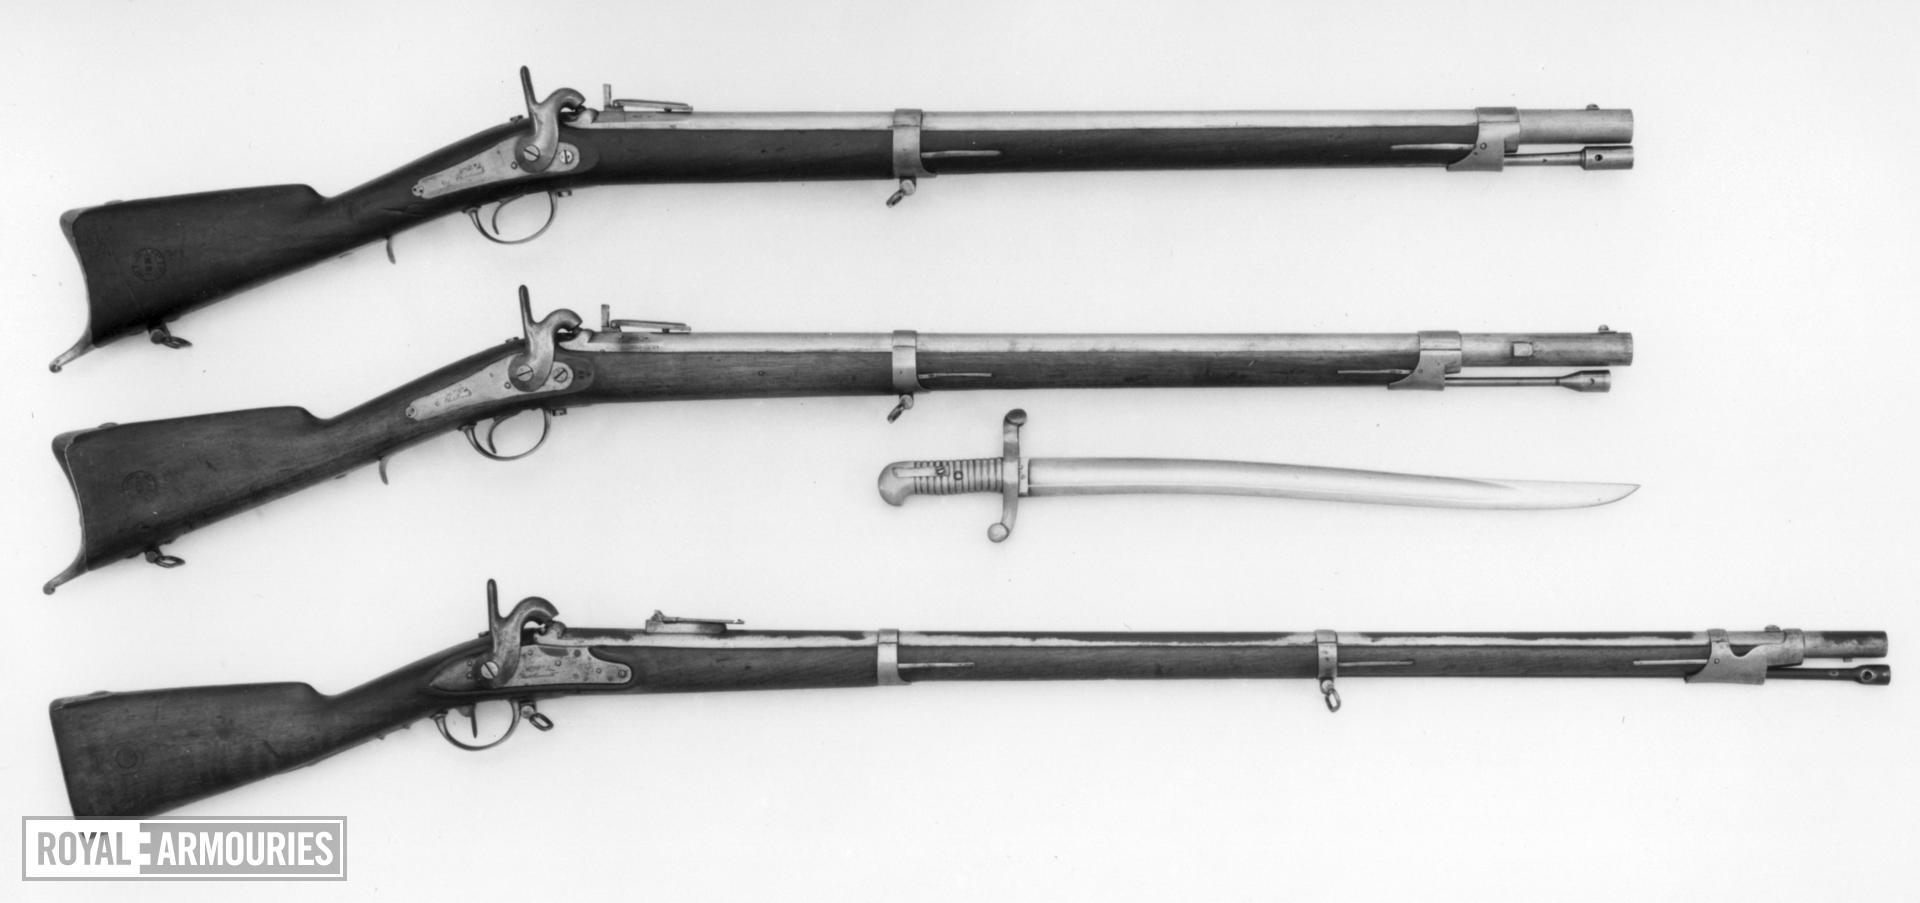 Percussion muzzle-loading military wall rifle - Model 1840